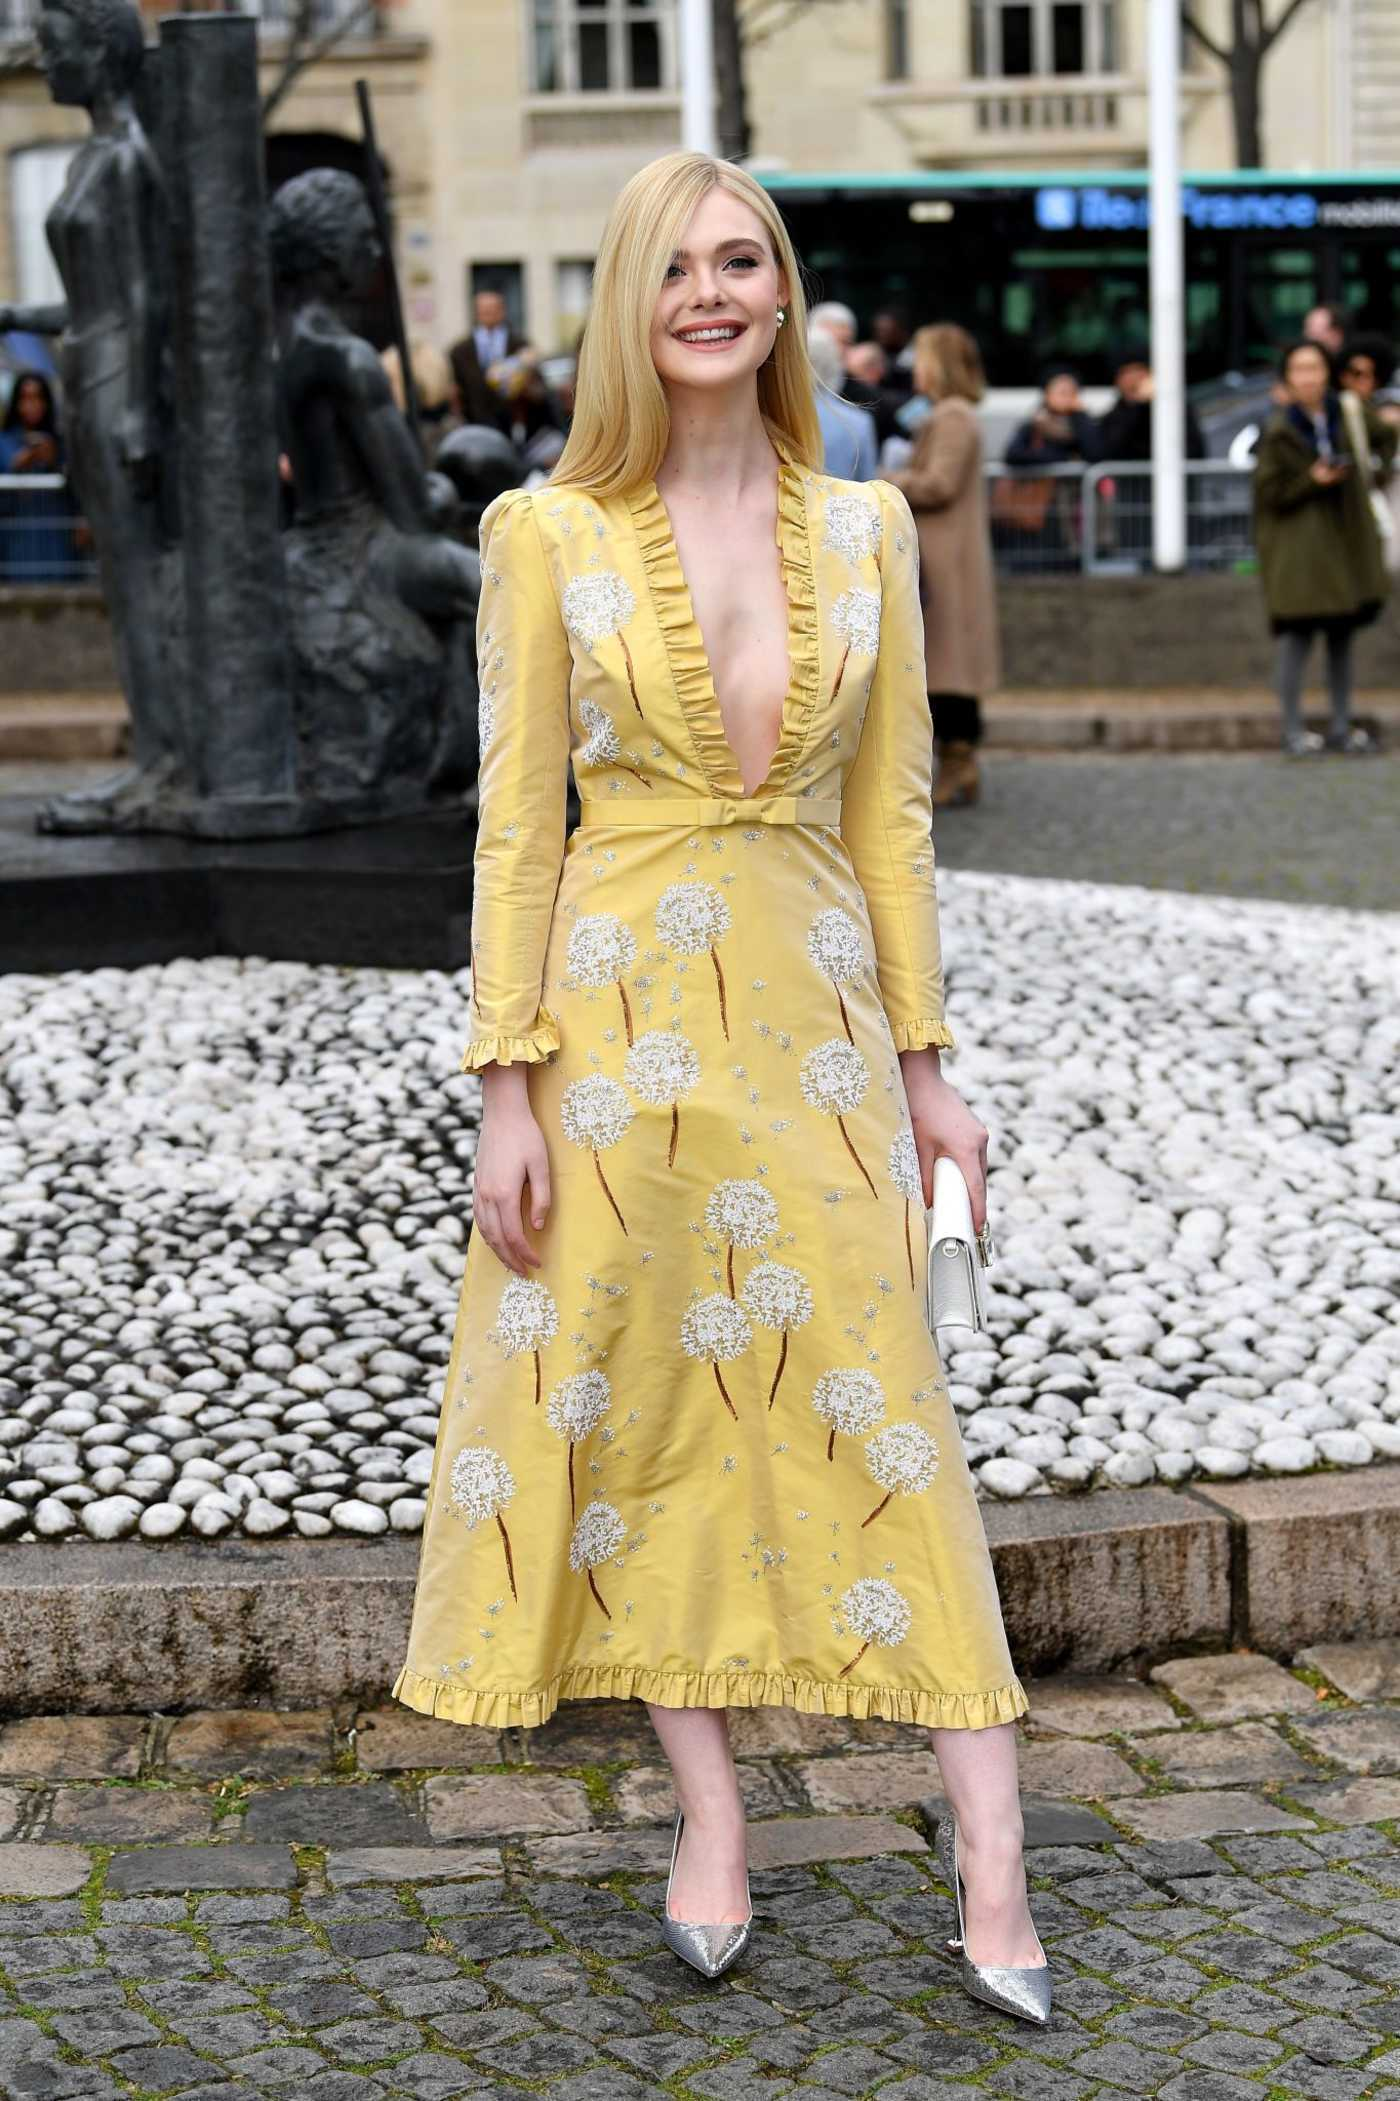 Elle Fanning in a Yellow Floral Dress Leaves the Miu Miu Fashion Show During PFW in Paris 03/05/2019